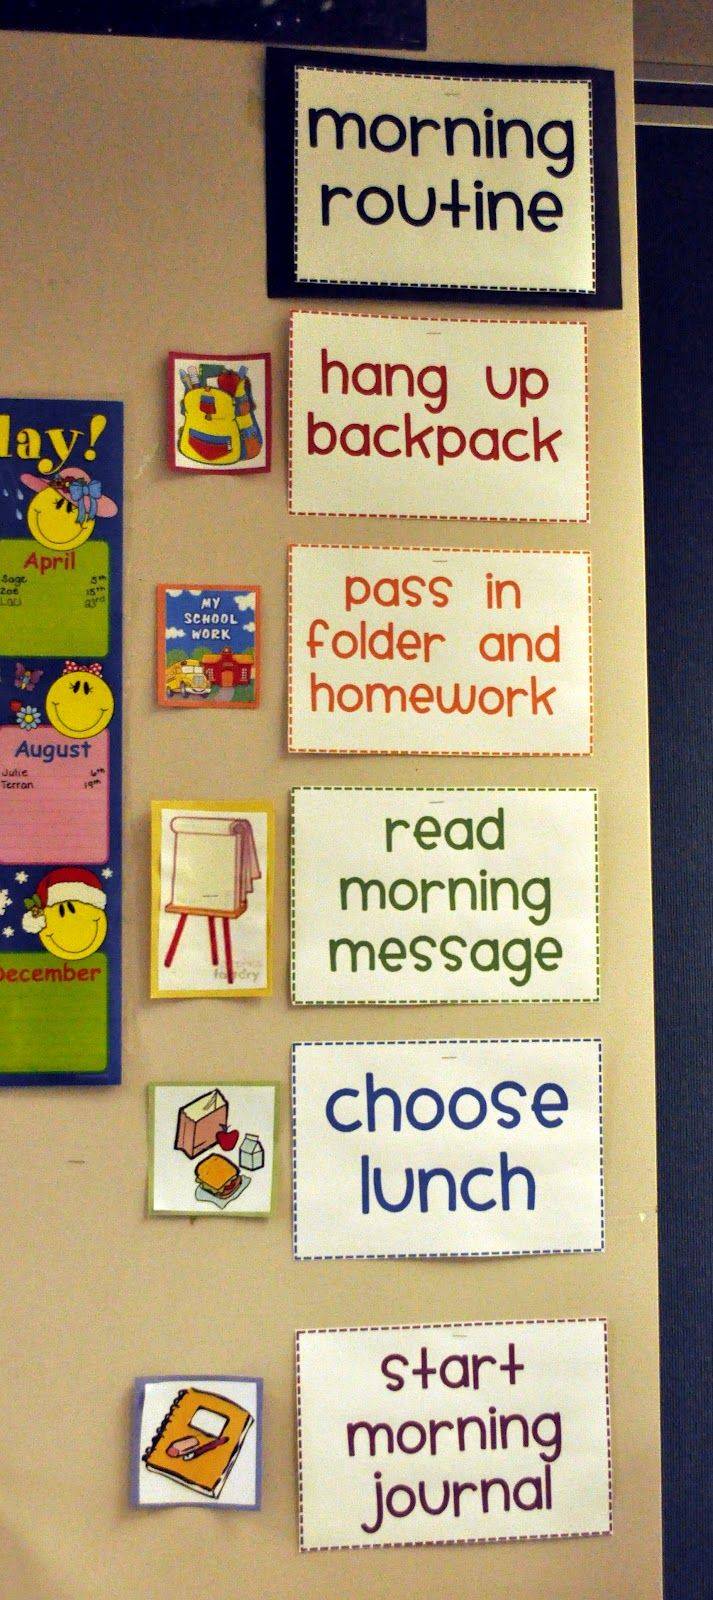 Having a schedule on the board would help the students know exactly what to do when they walk in in the morning.